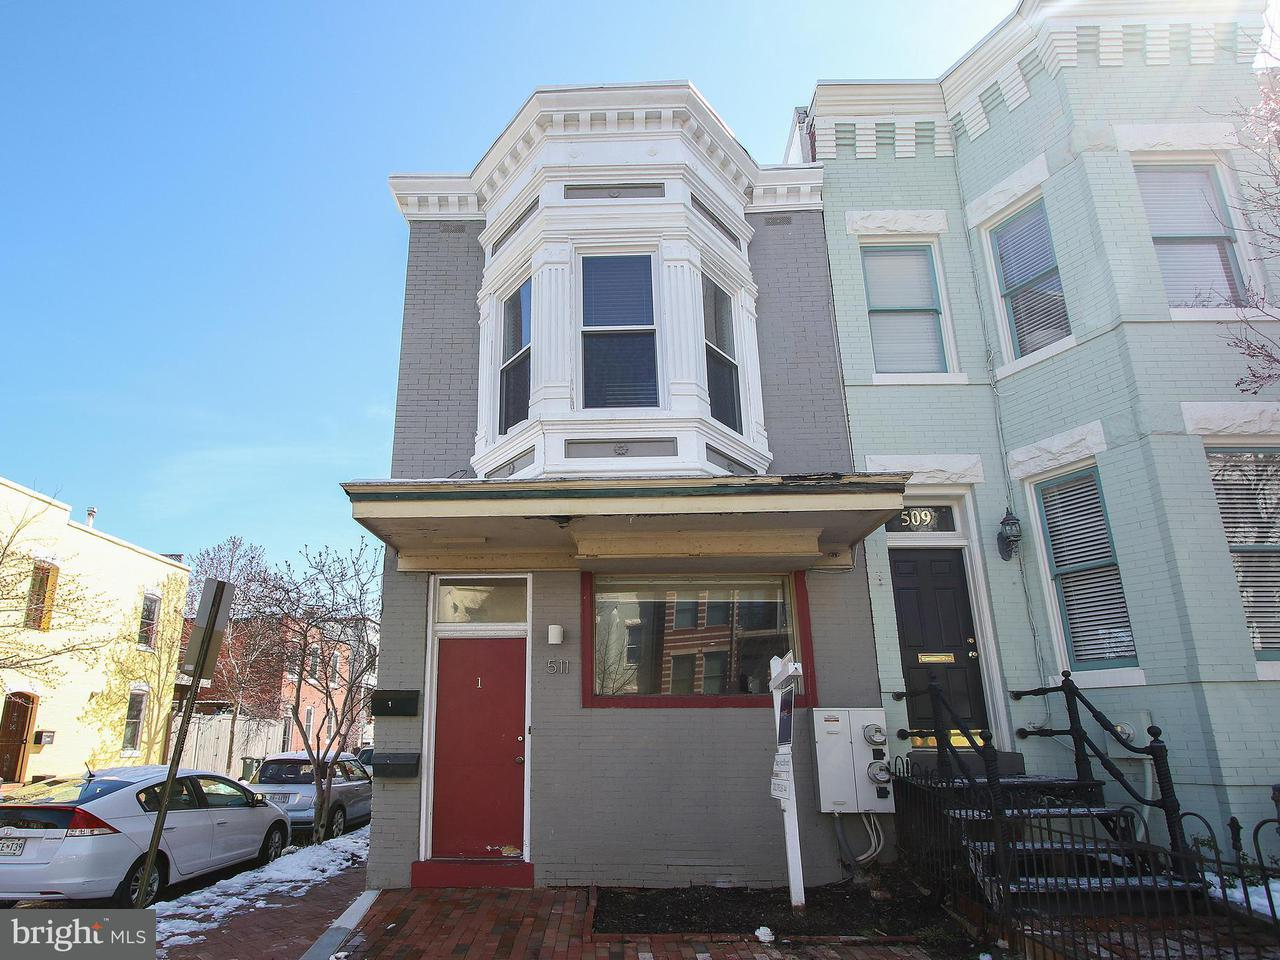 Townhouse for Sale at 511 6th St Ne 511 6th St Ne Washington, District Of Columbia 20002 United States